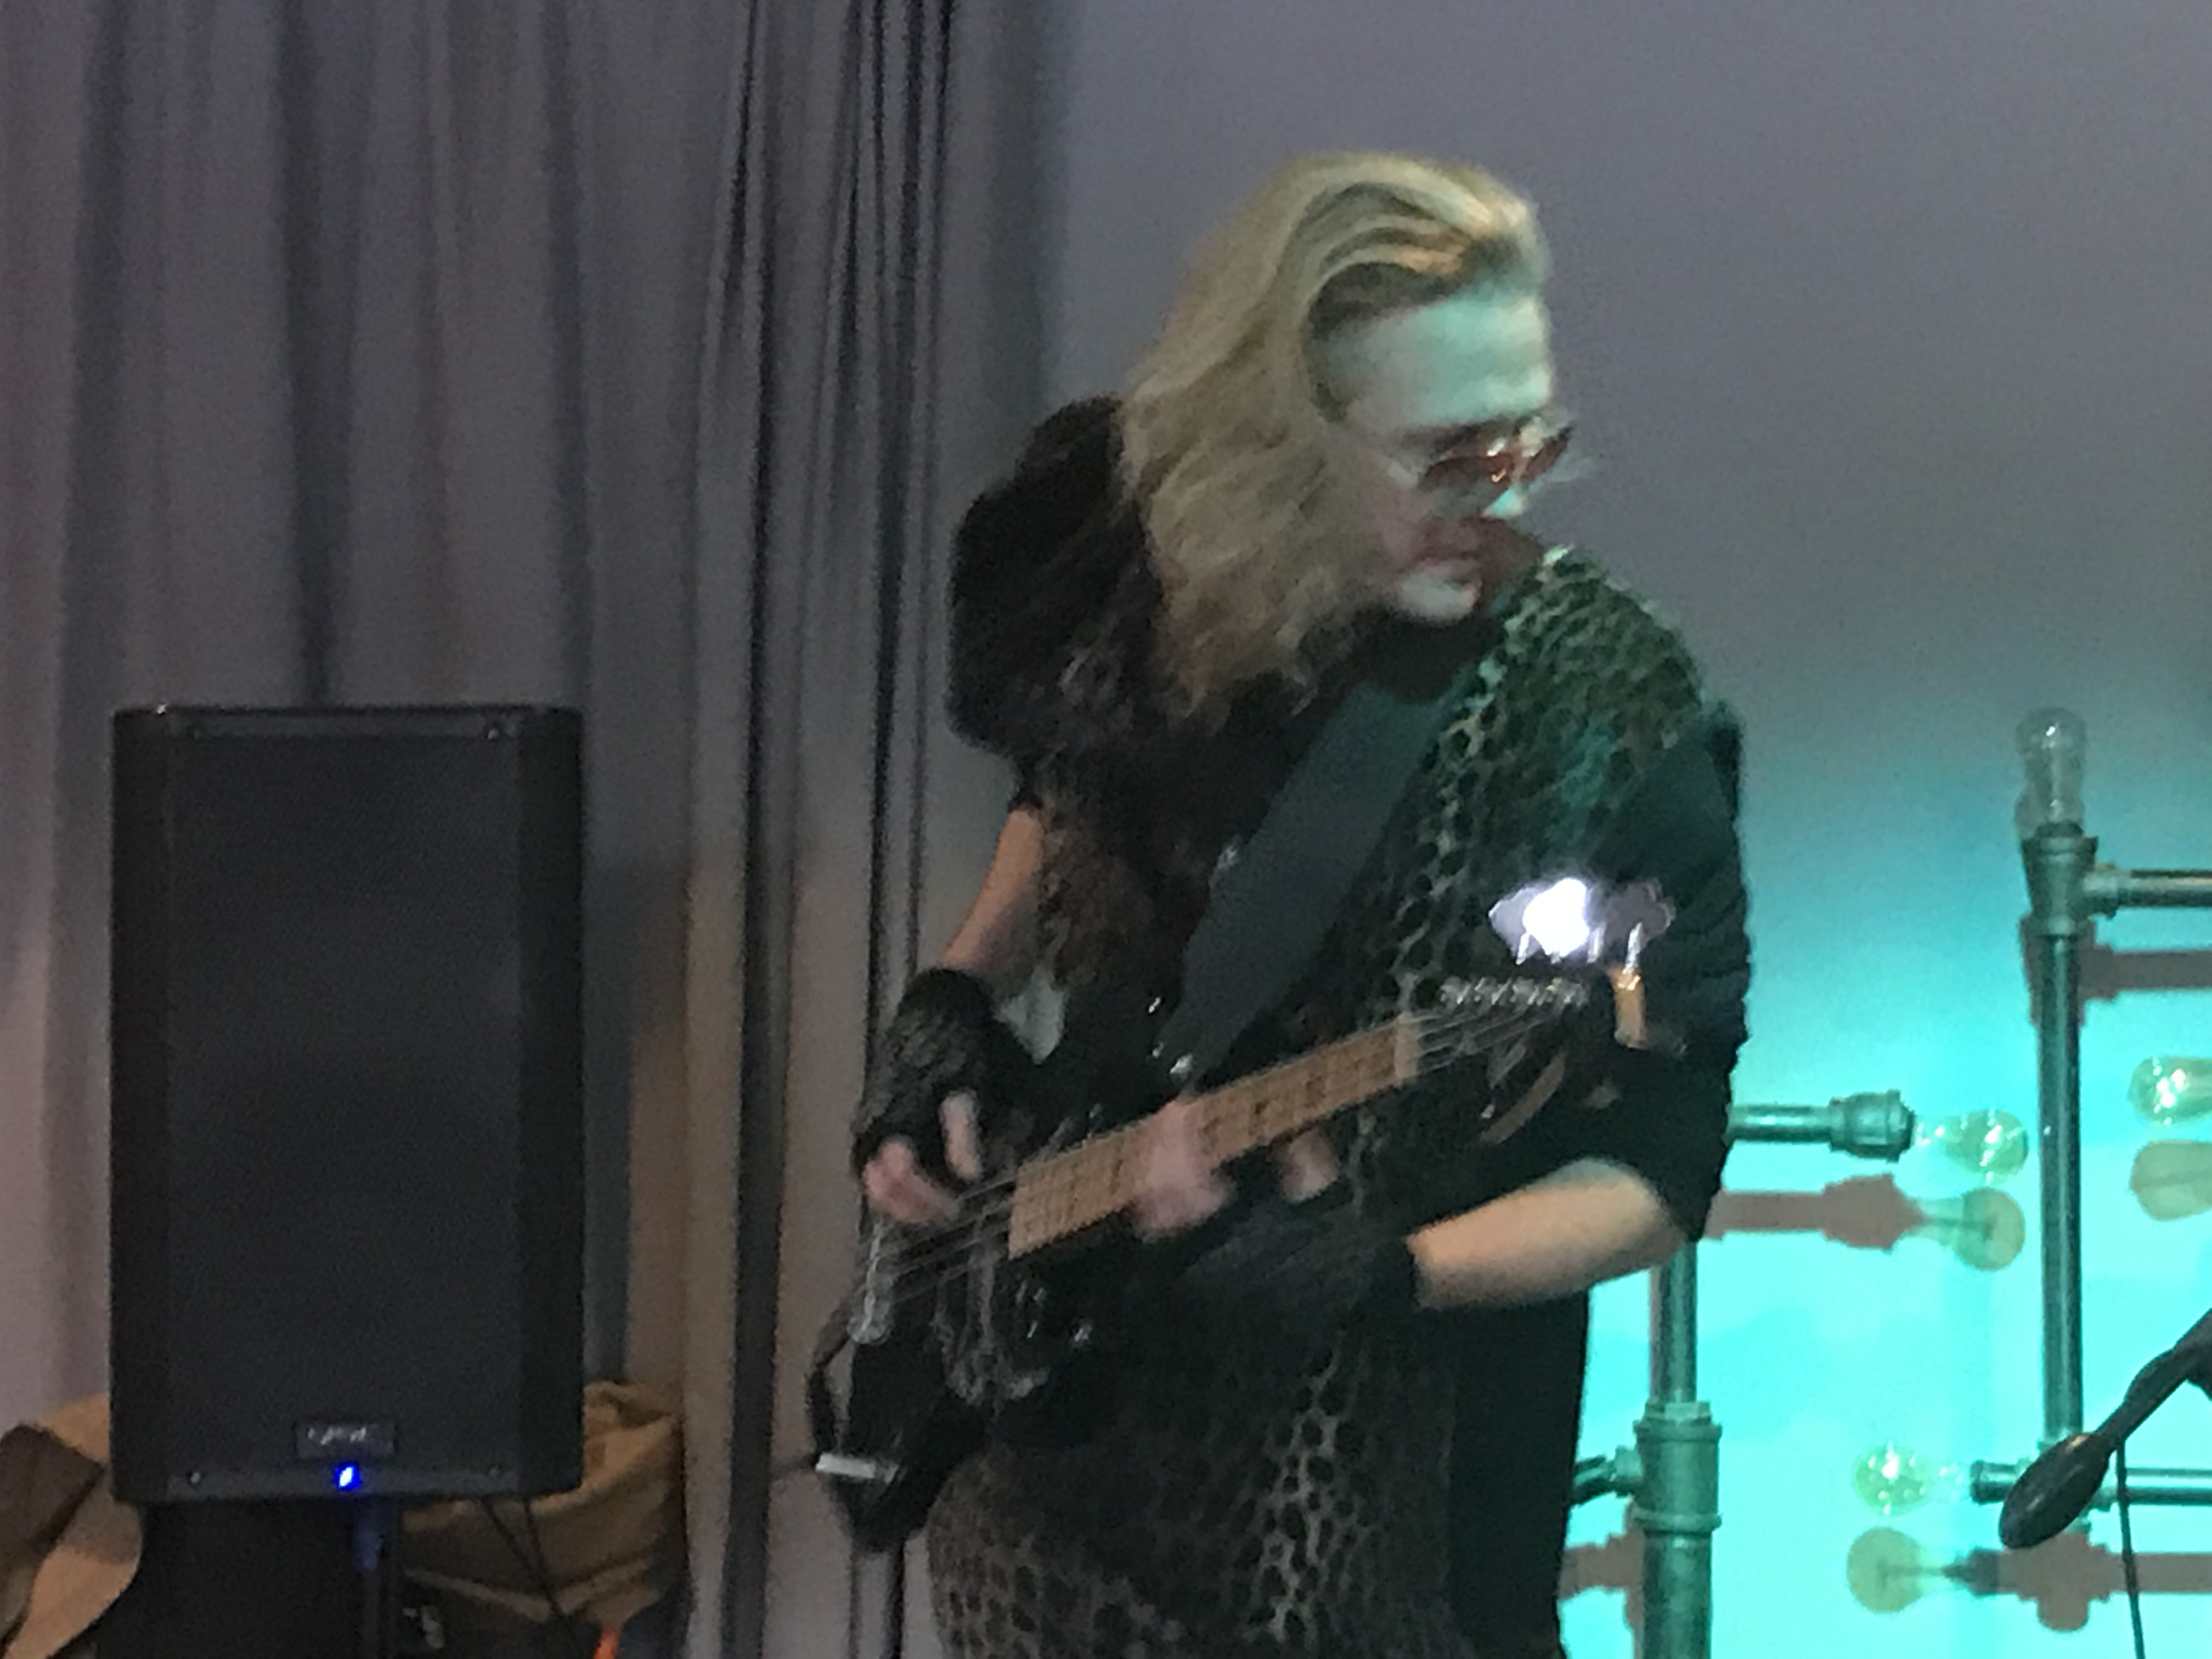 Todd playing electric bass